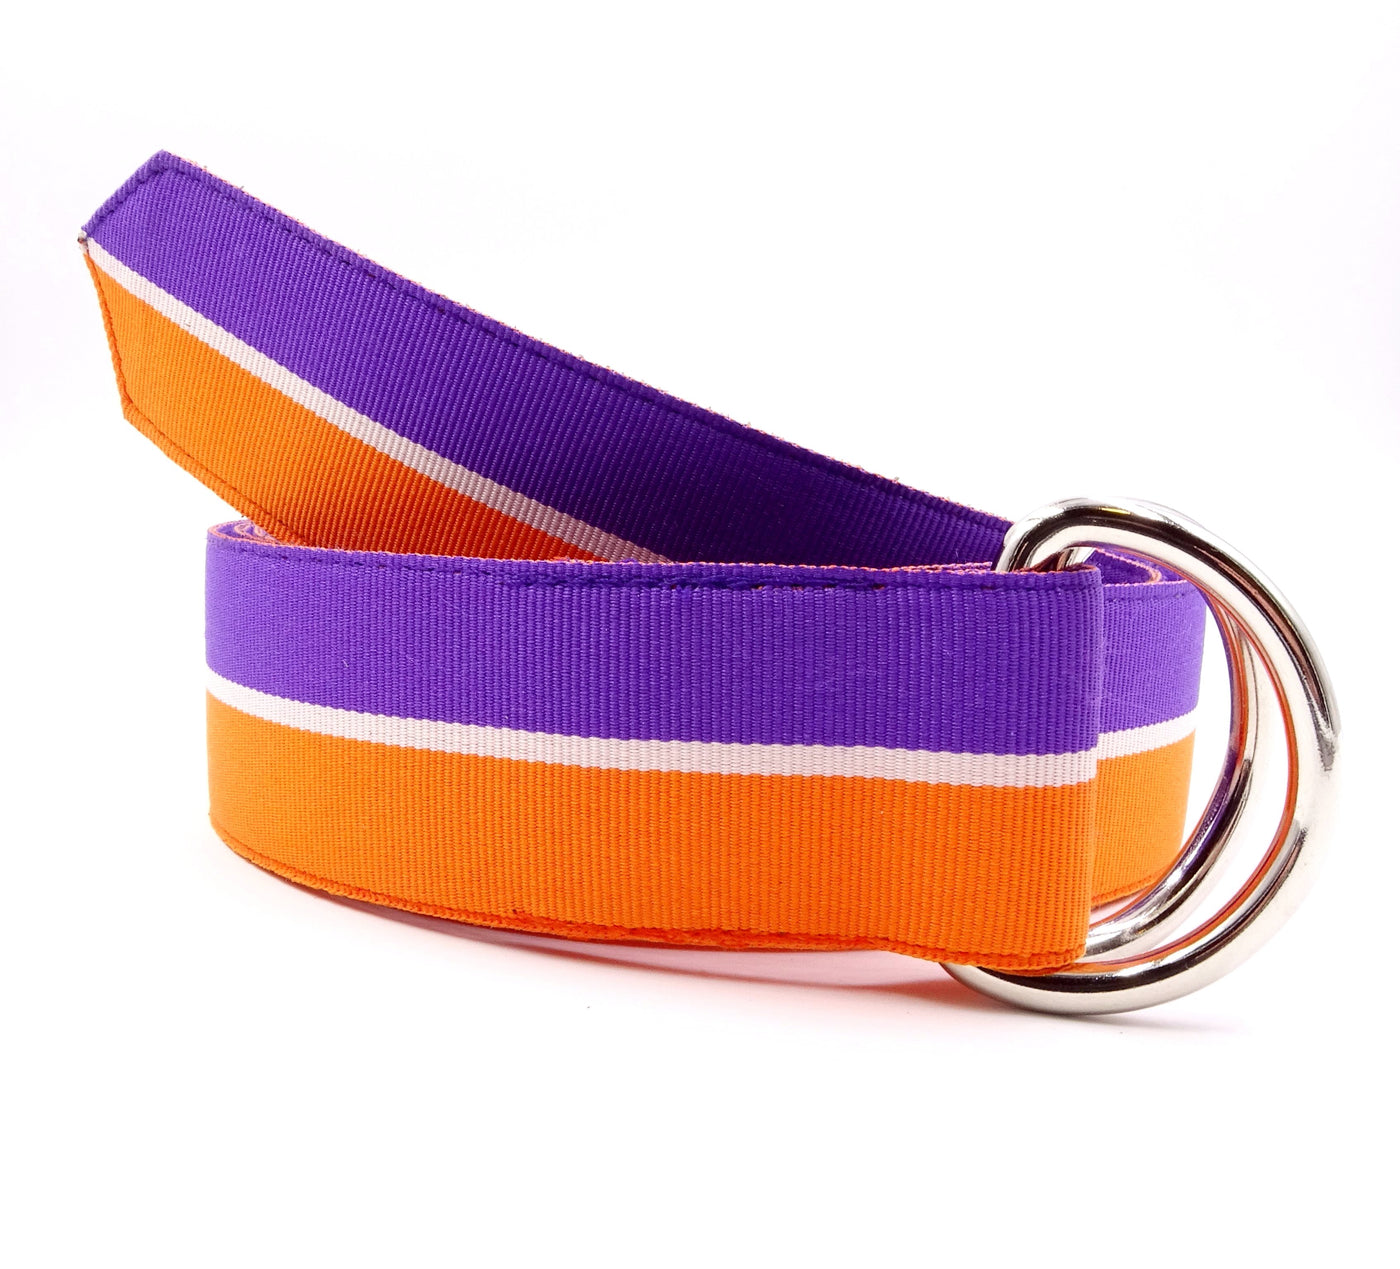 Clemson Purple & Orange Ribbon Belt - FH Wadsworth